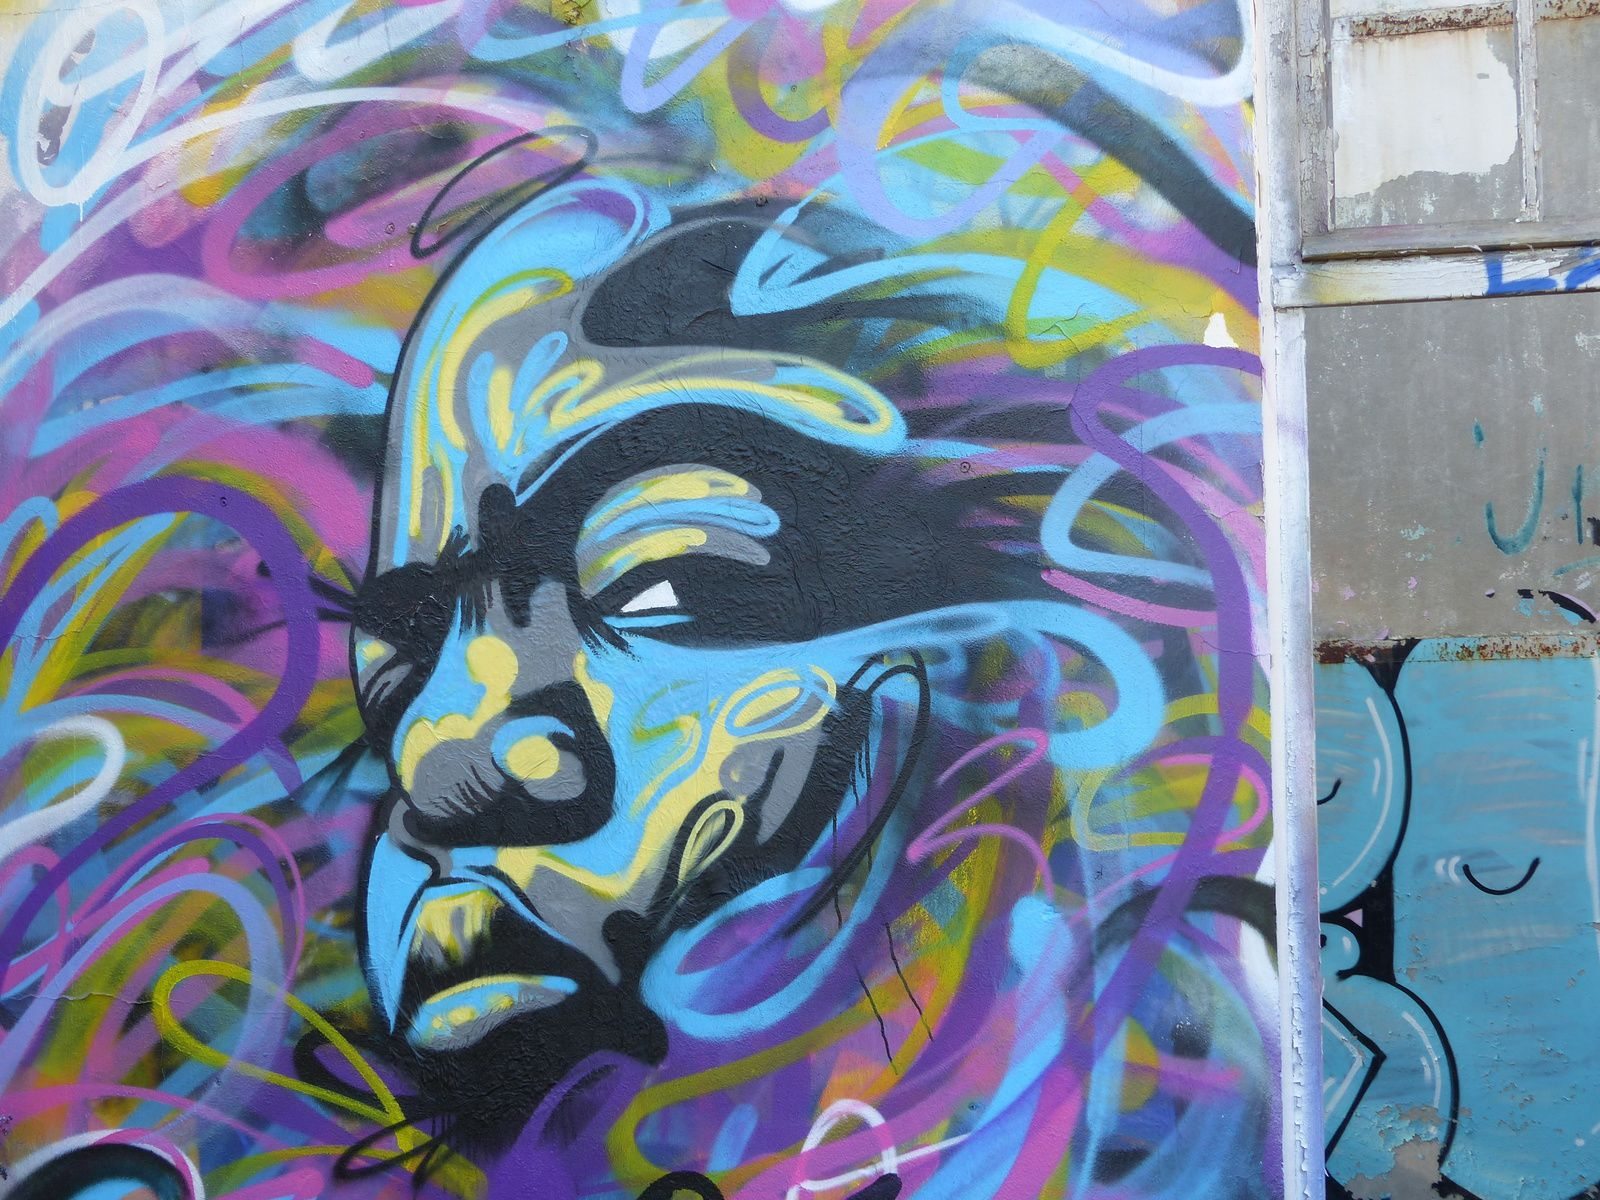 DARWIN THE ART PLACE  TO BE